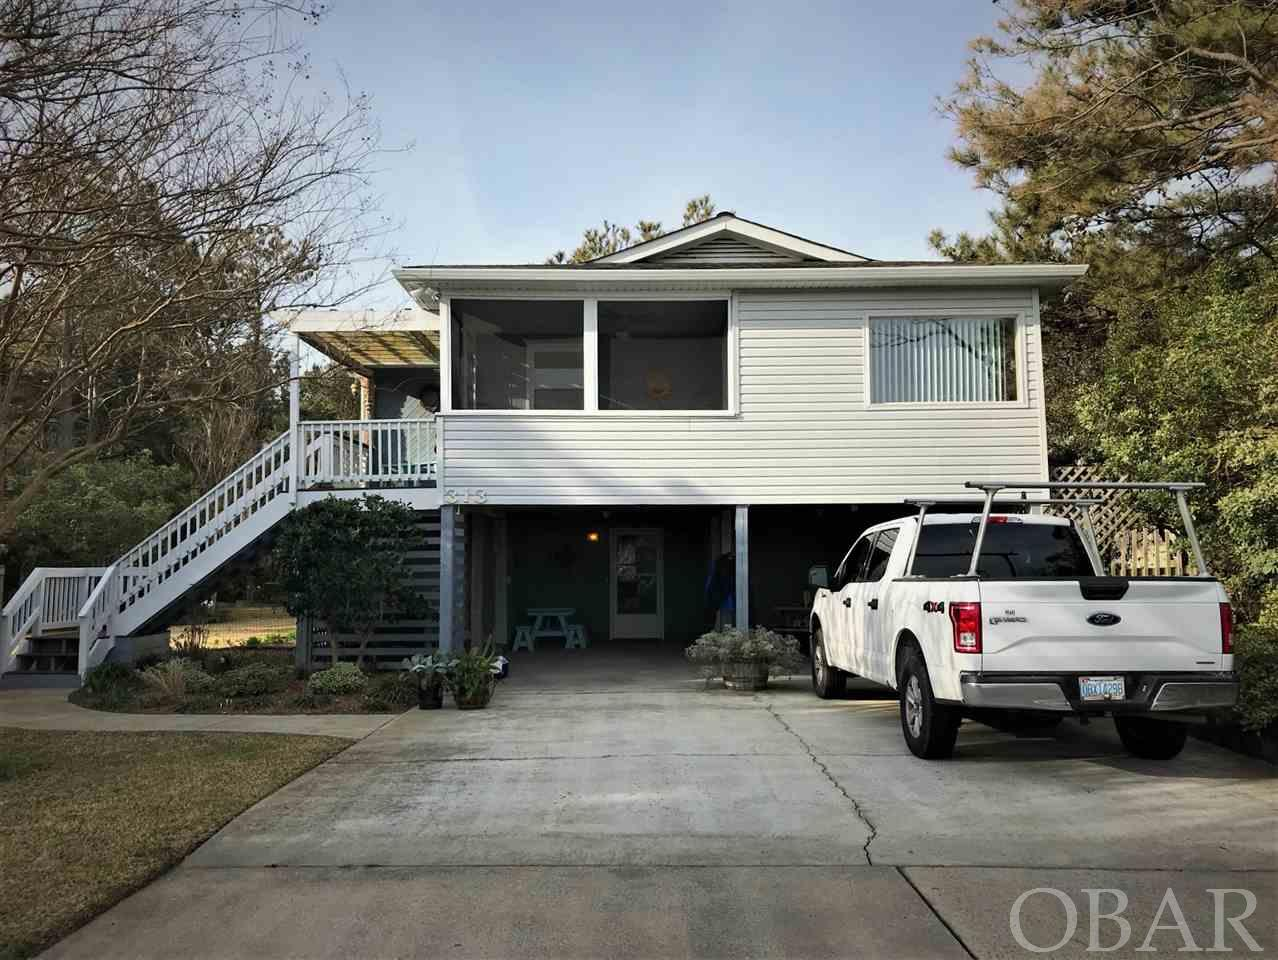 Wilbur Court, Kill Devil Hills, NC 27948, 3 Bedrooms Bedrooms, ,3 BathroomsBathrooms,Residential,For sale,Wilbur Court,104239